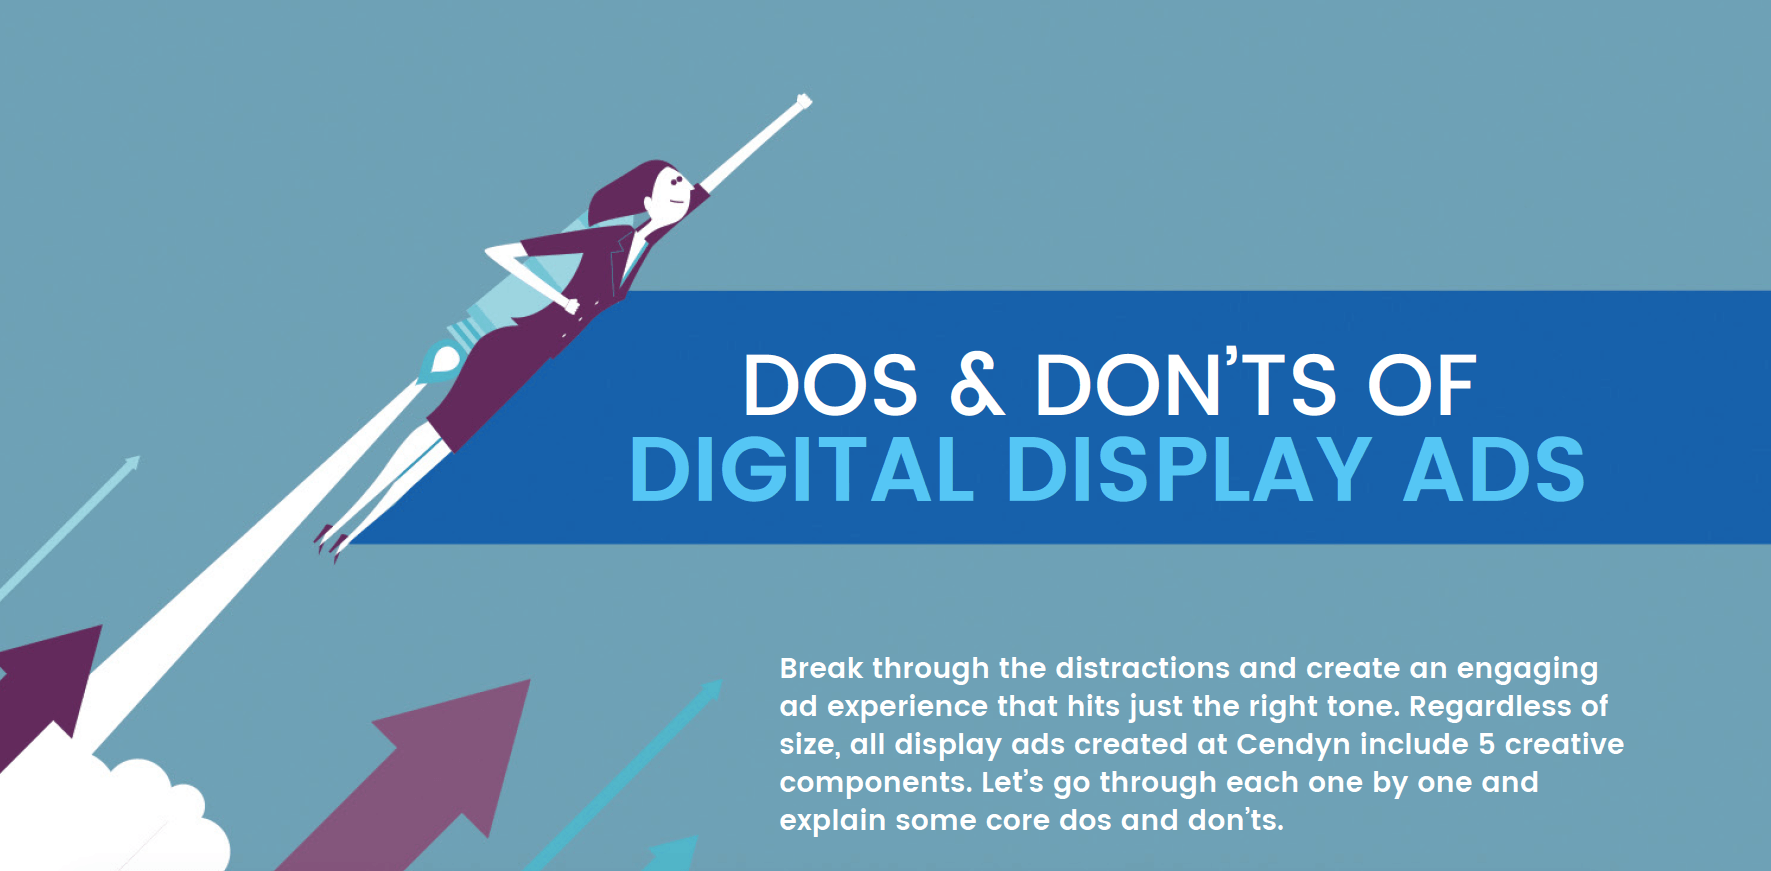 dos and don'ts of display ads